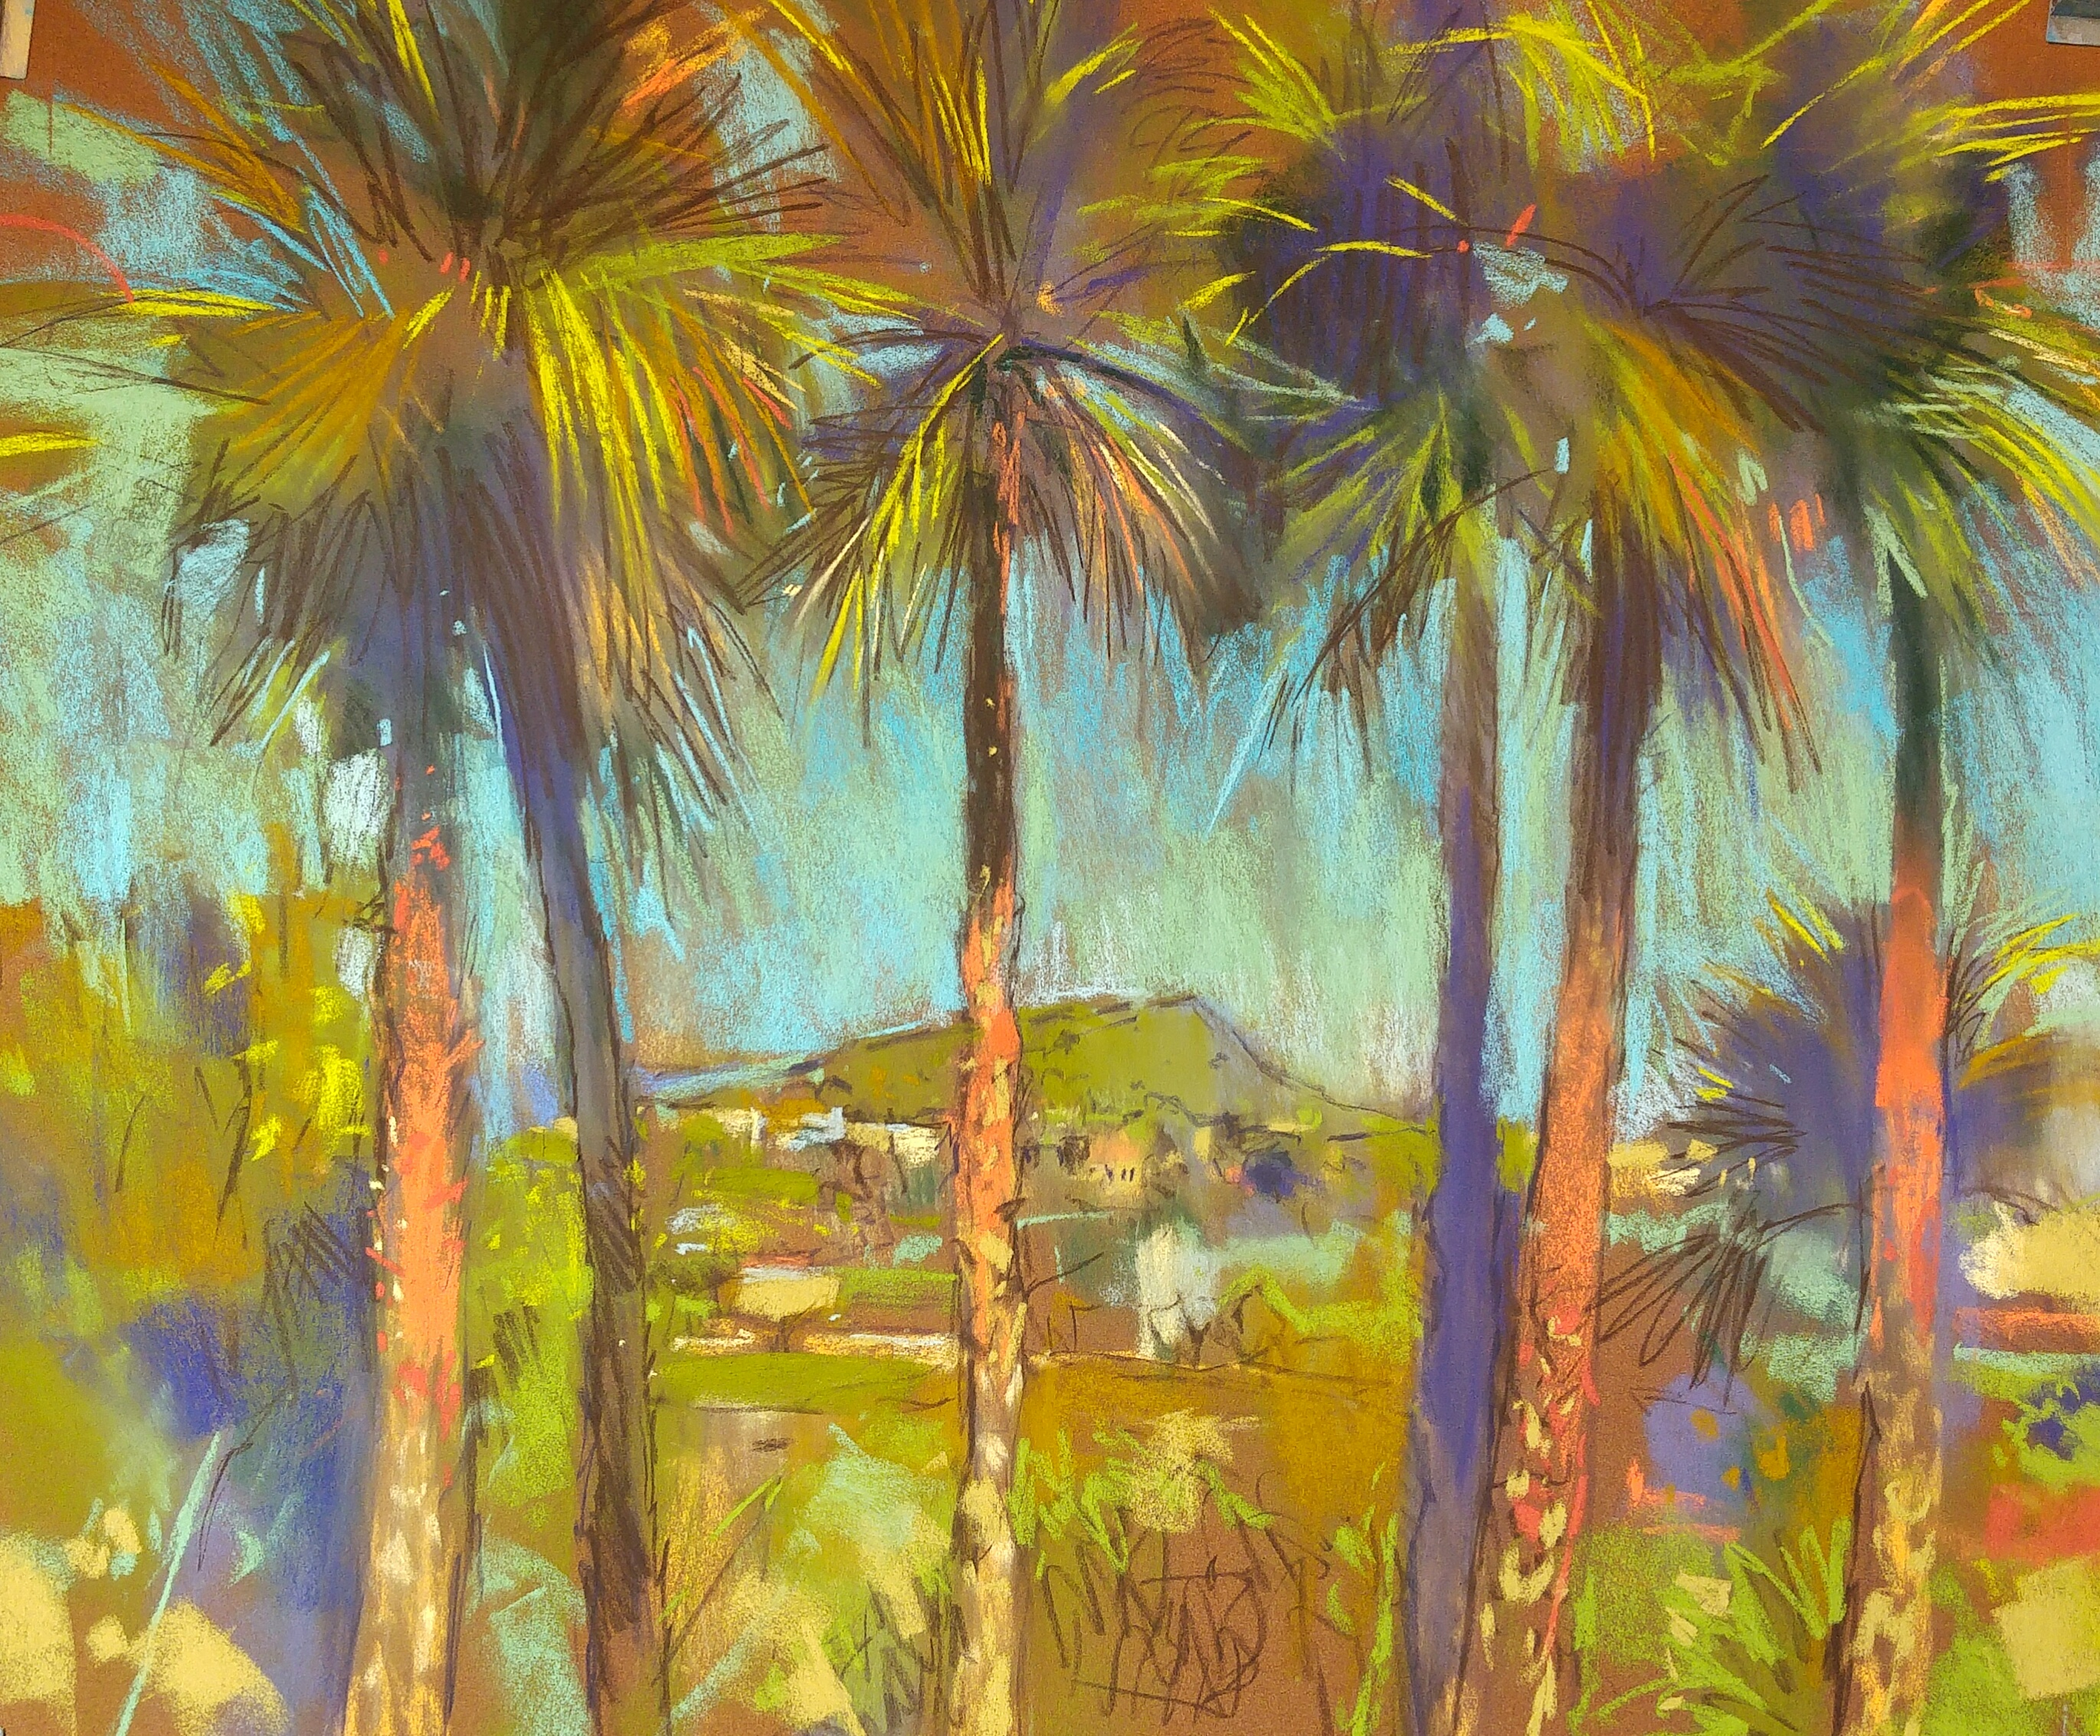 Richard Suckling, Spanish work in progress, pastel on Sennelier La Carte, 17 ¾ x 19 ¾ in. A studio piece from drawings and photos collected whilst on the Costa Blanca.